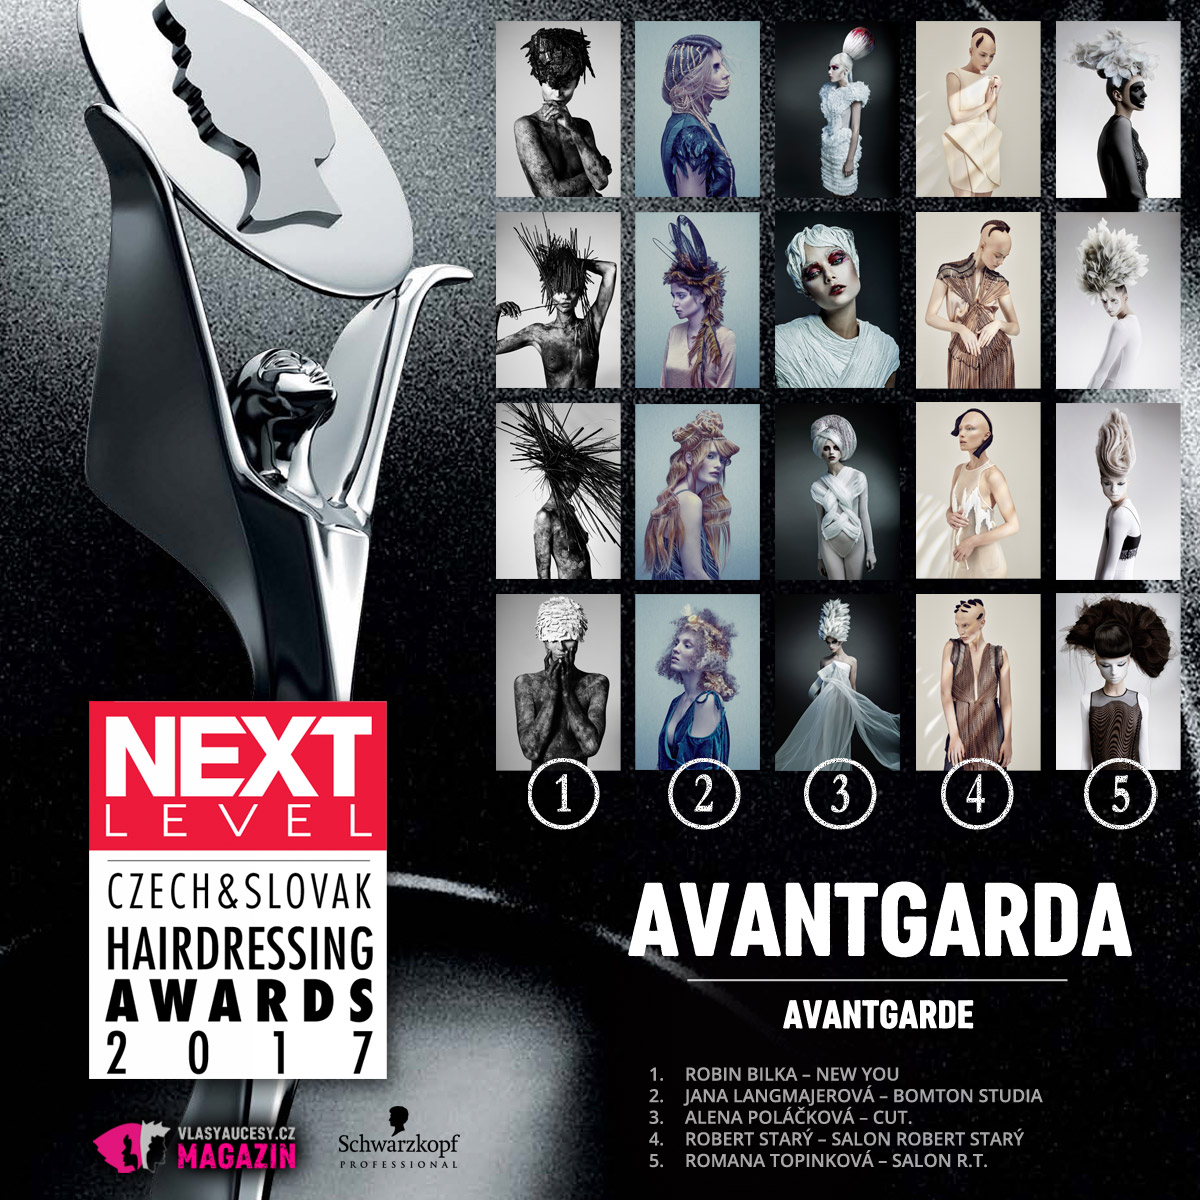 Czech&Slovak Hairdressing Awards 2017 – kategorie Avantgarda.